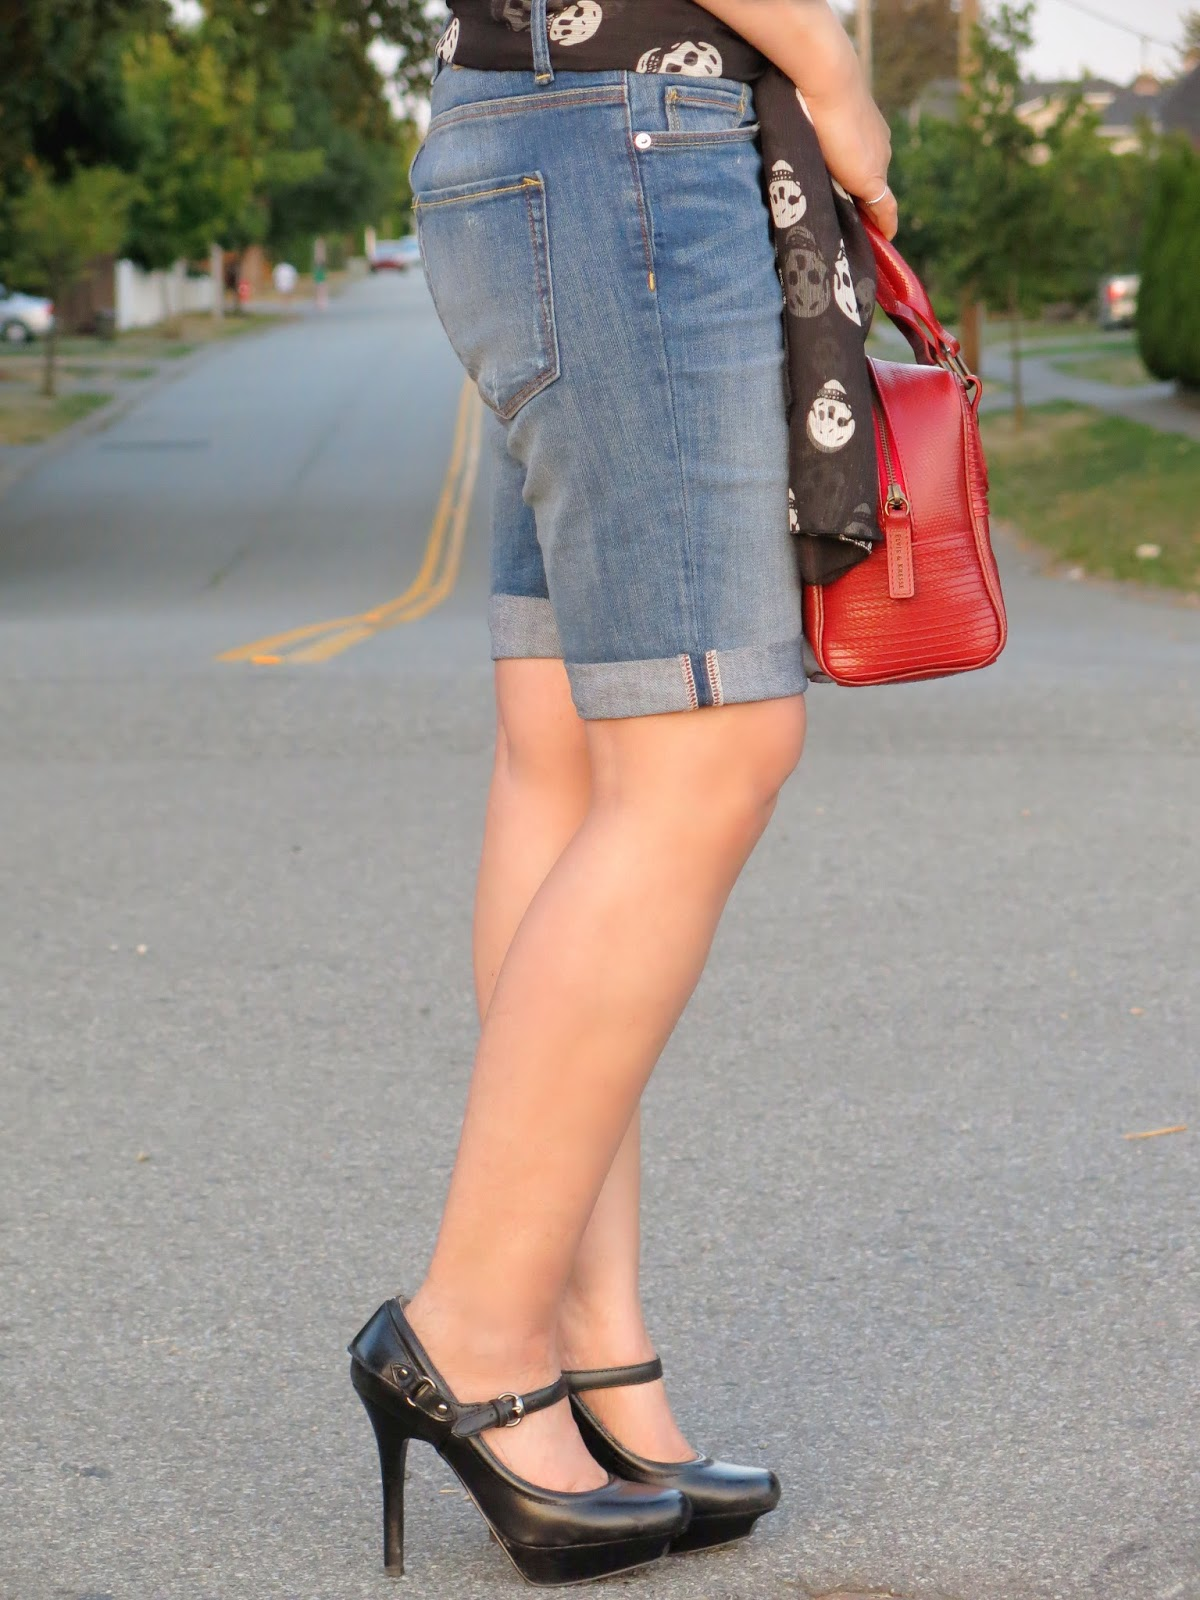 styling denim bermuda shorts with platform mary-jane shoes, a scull-print scarf, and Elvis & Kresse bag